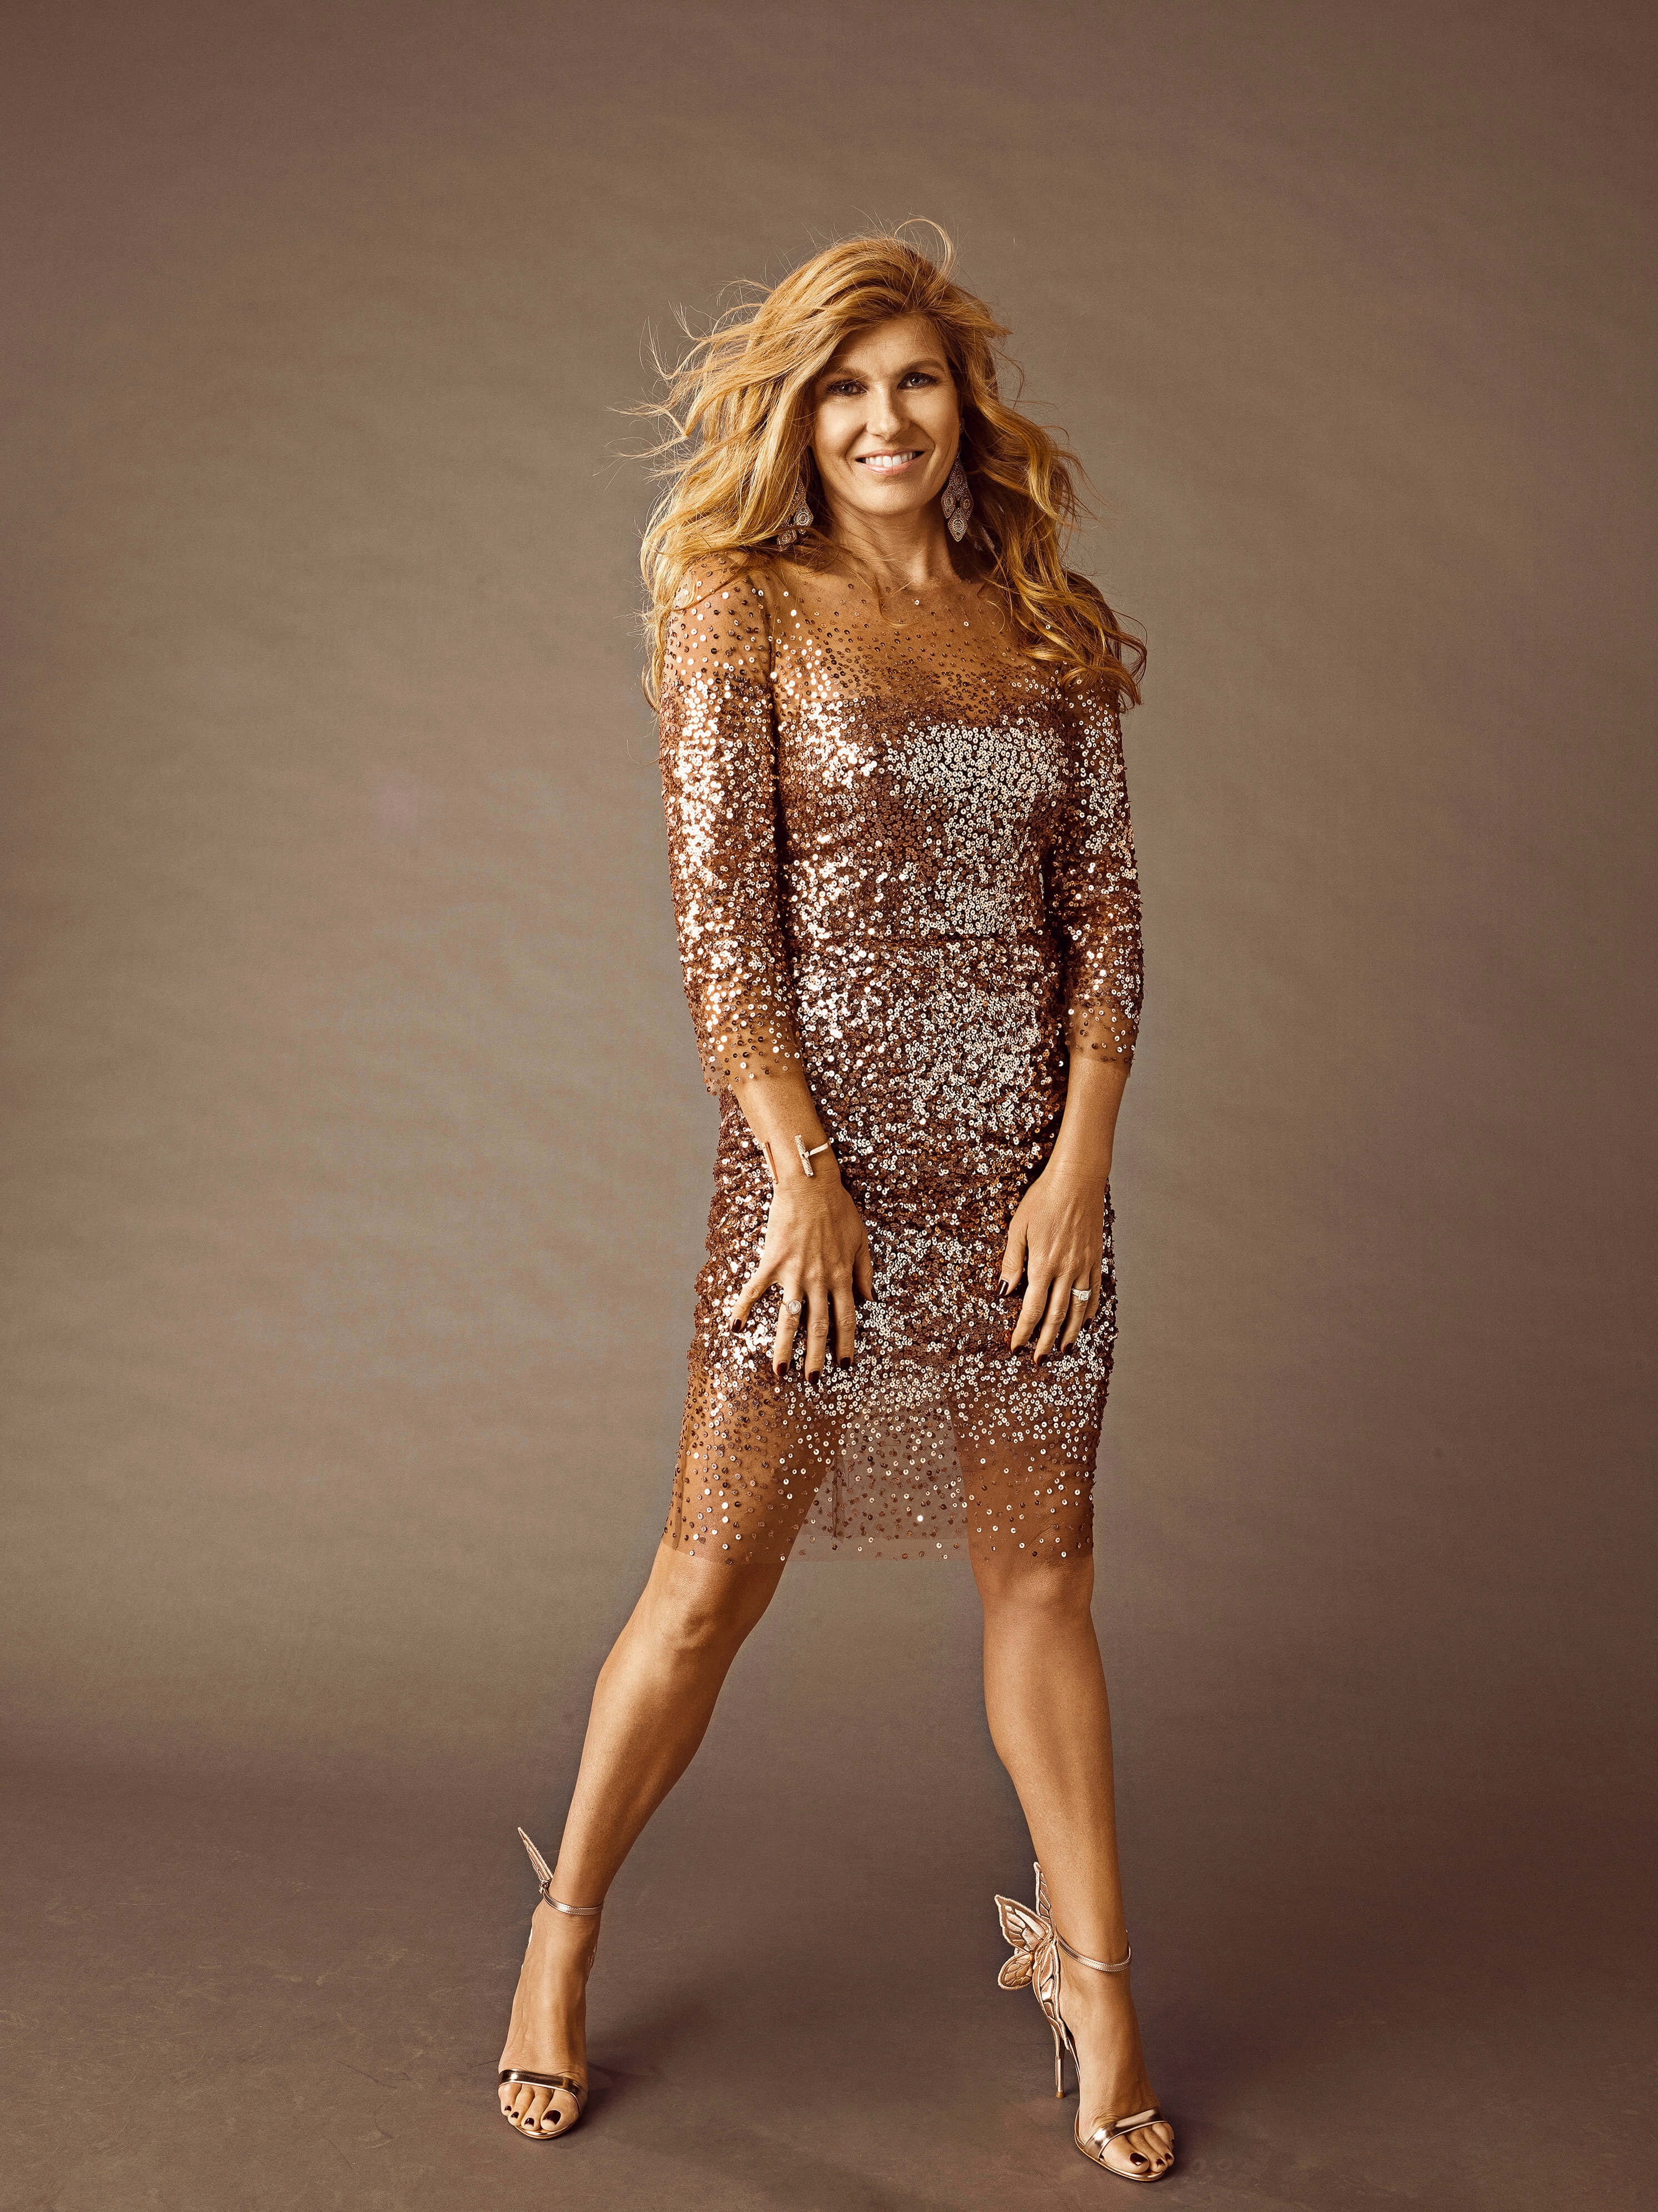 49 Hot Pictures Of Connie Britton That Are Simply Gorgeous-3283